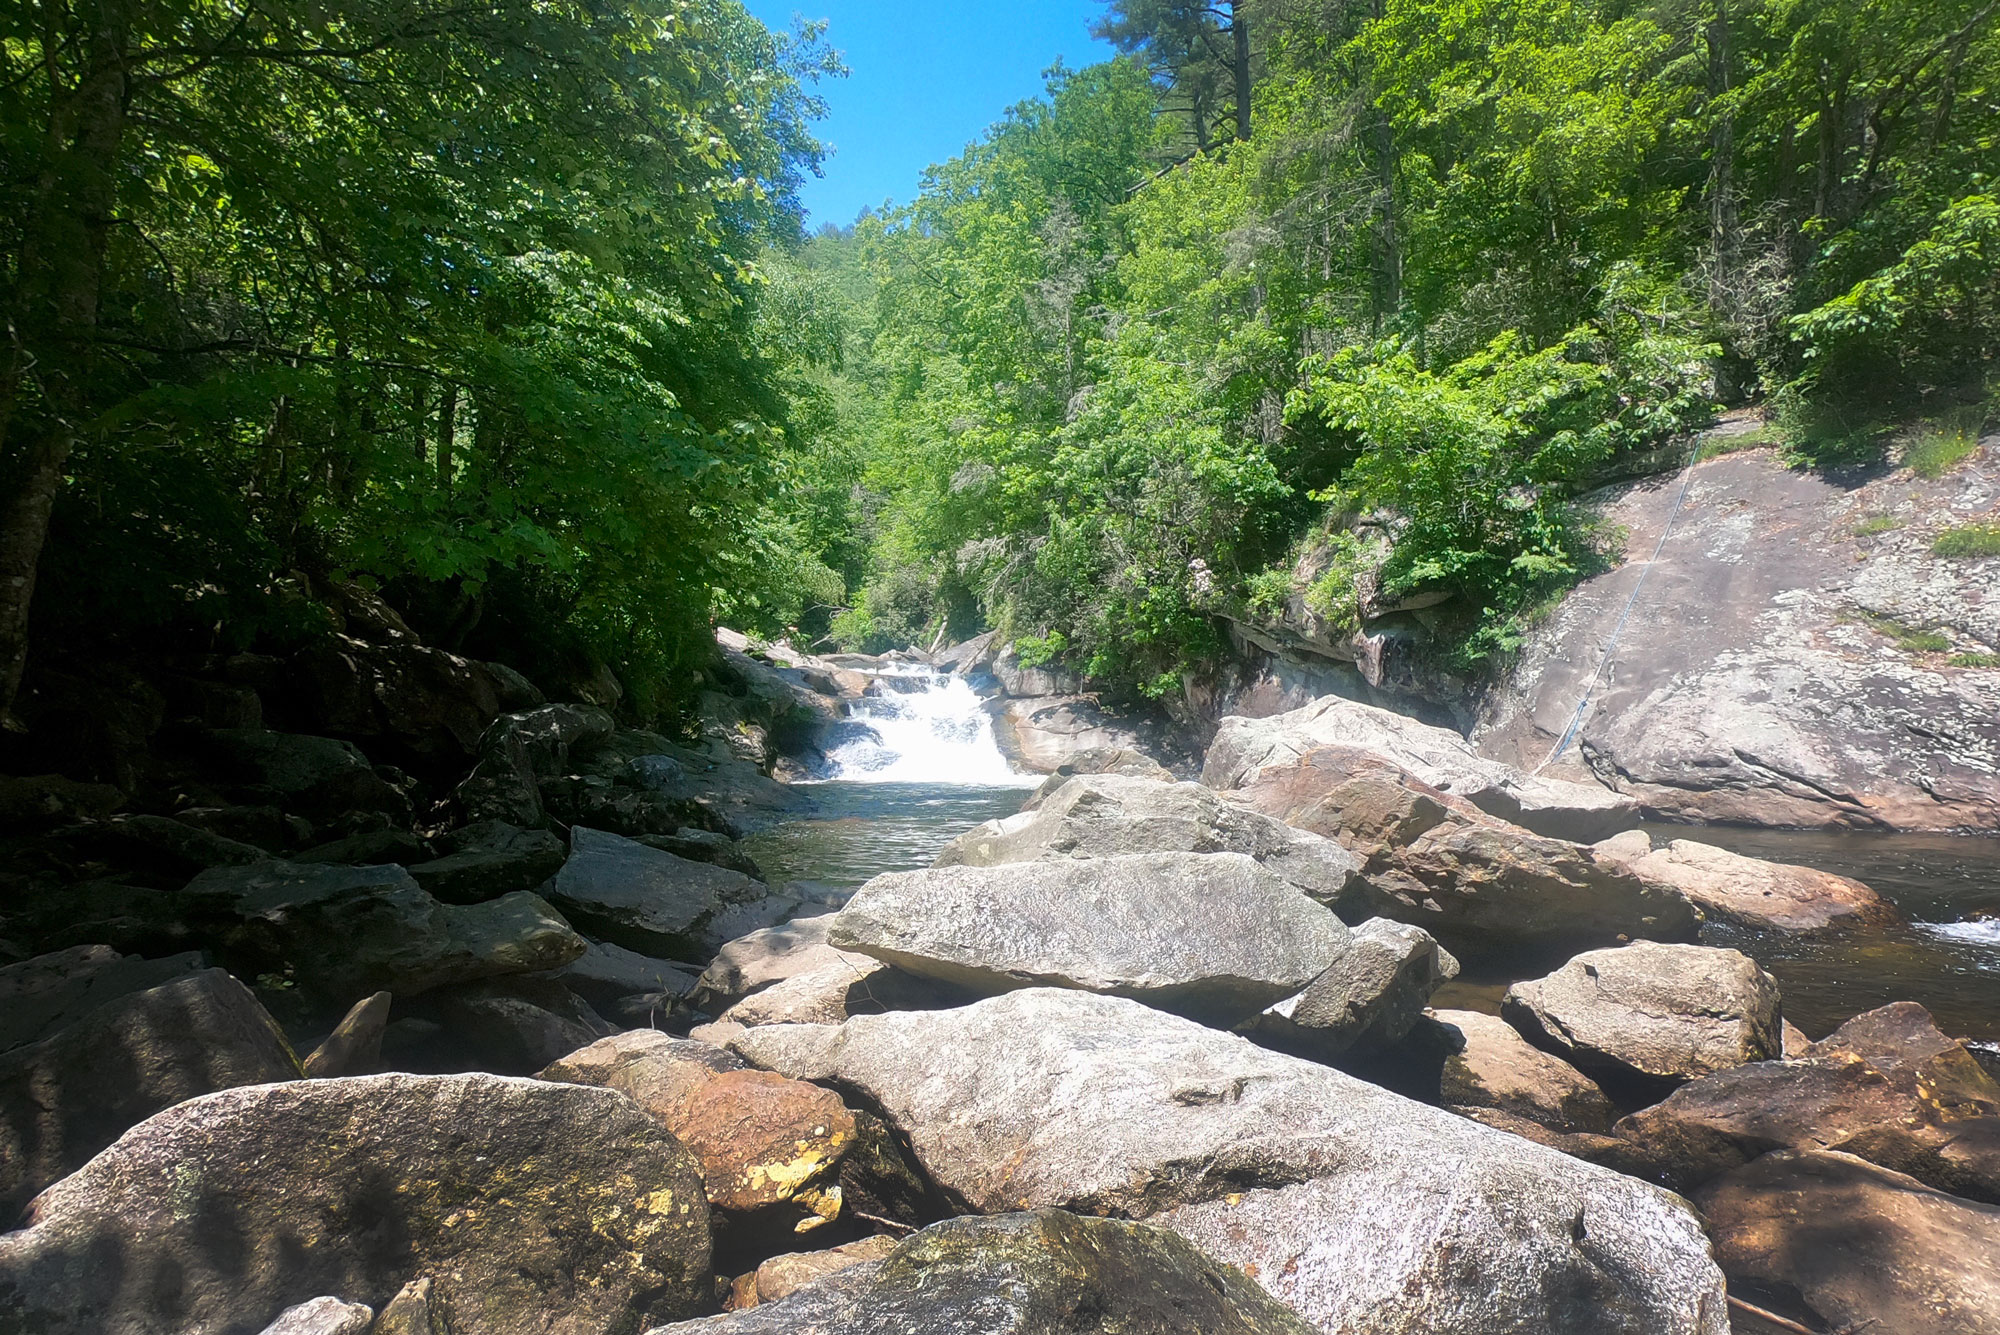 Bust Your Butt Falls swimming hole off Highway 64 near Standing Indian Campground